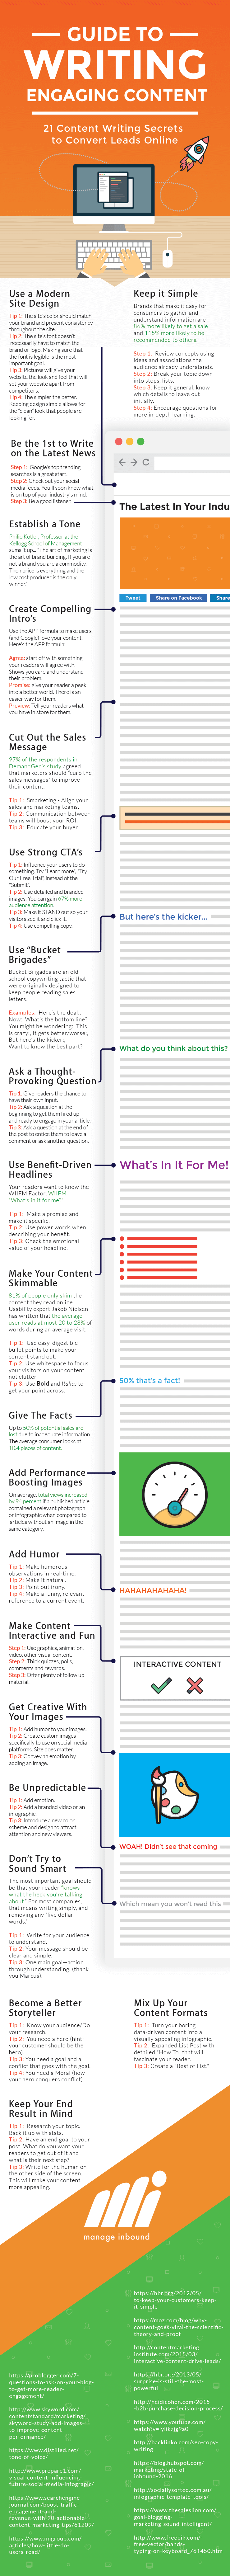 21-content-writing-secrects-infographic